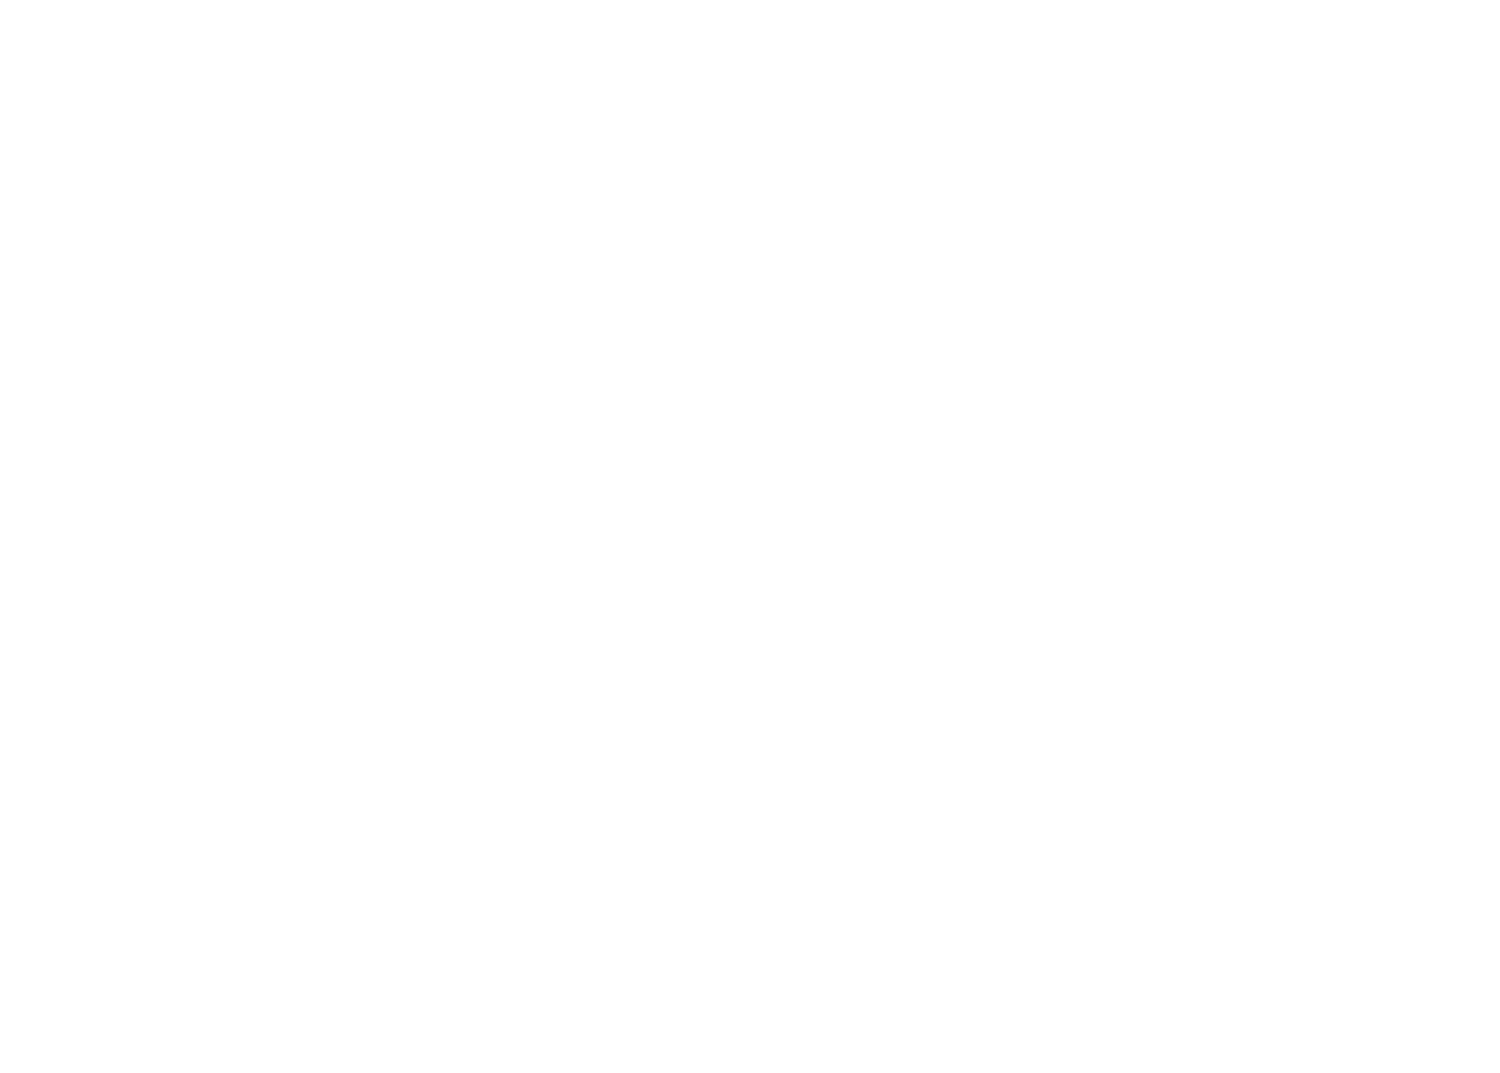 Union Départementale des Associations Familiales